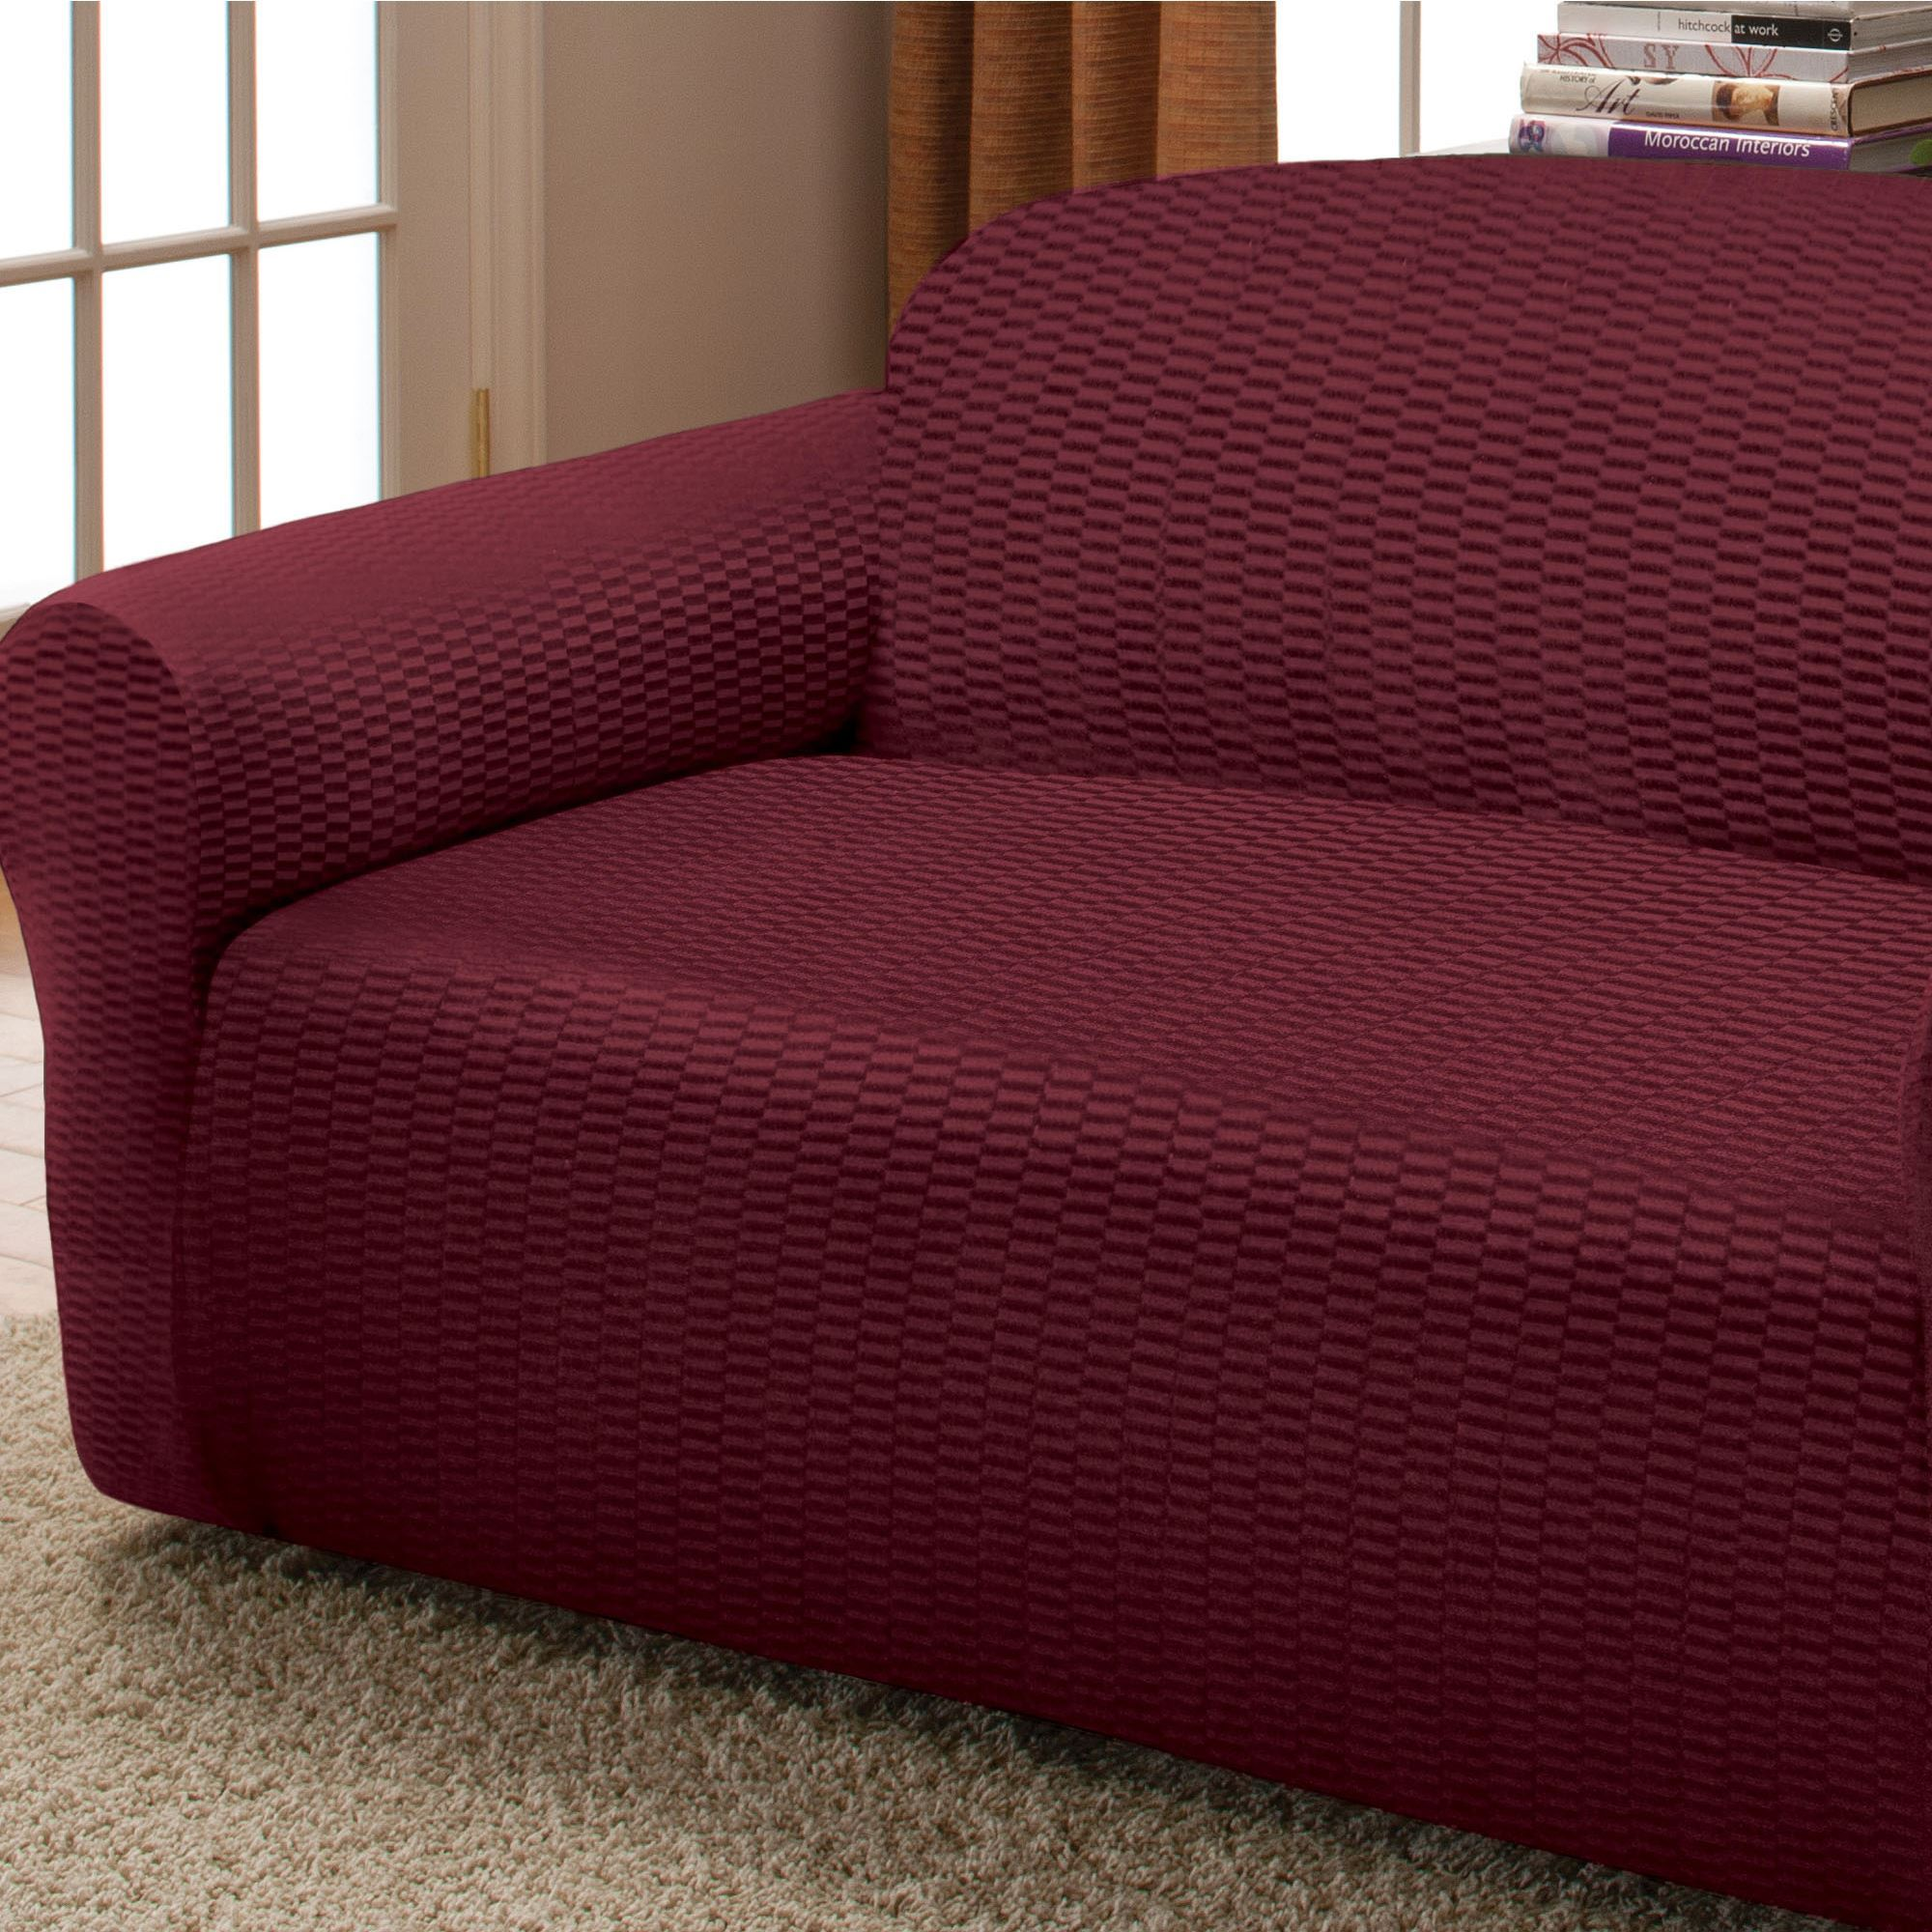 Raise the Bar Stretch Sofa Slipcovers